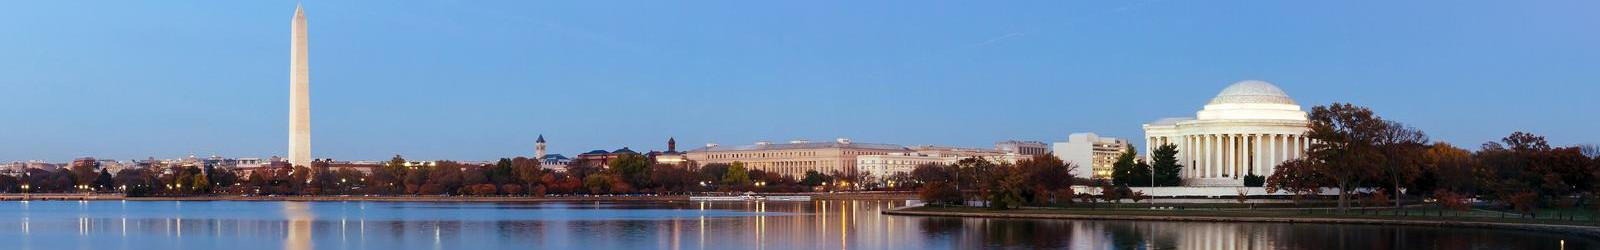 Therapists in Washington, District of Columbia: psychologists, counselors, and mental health specialists